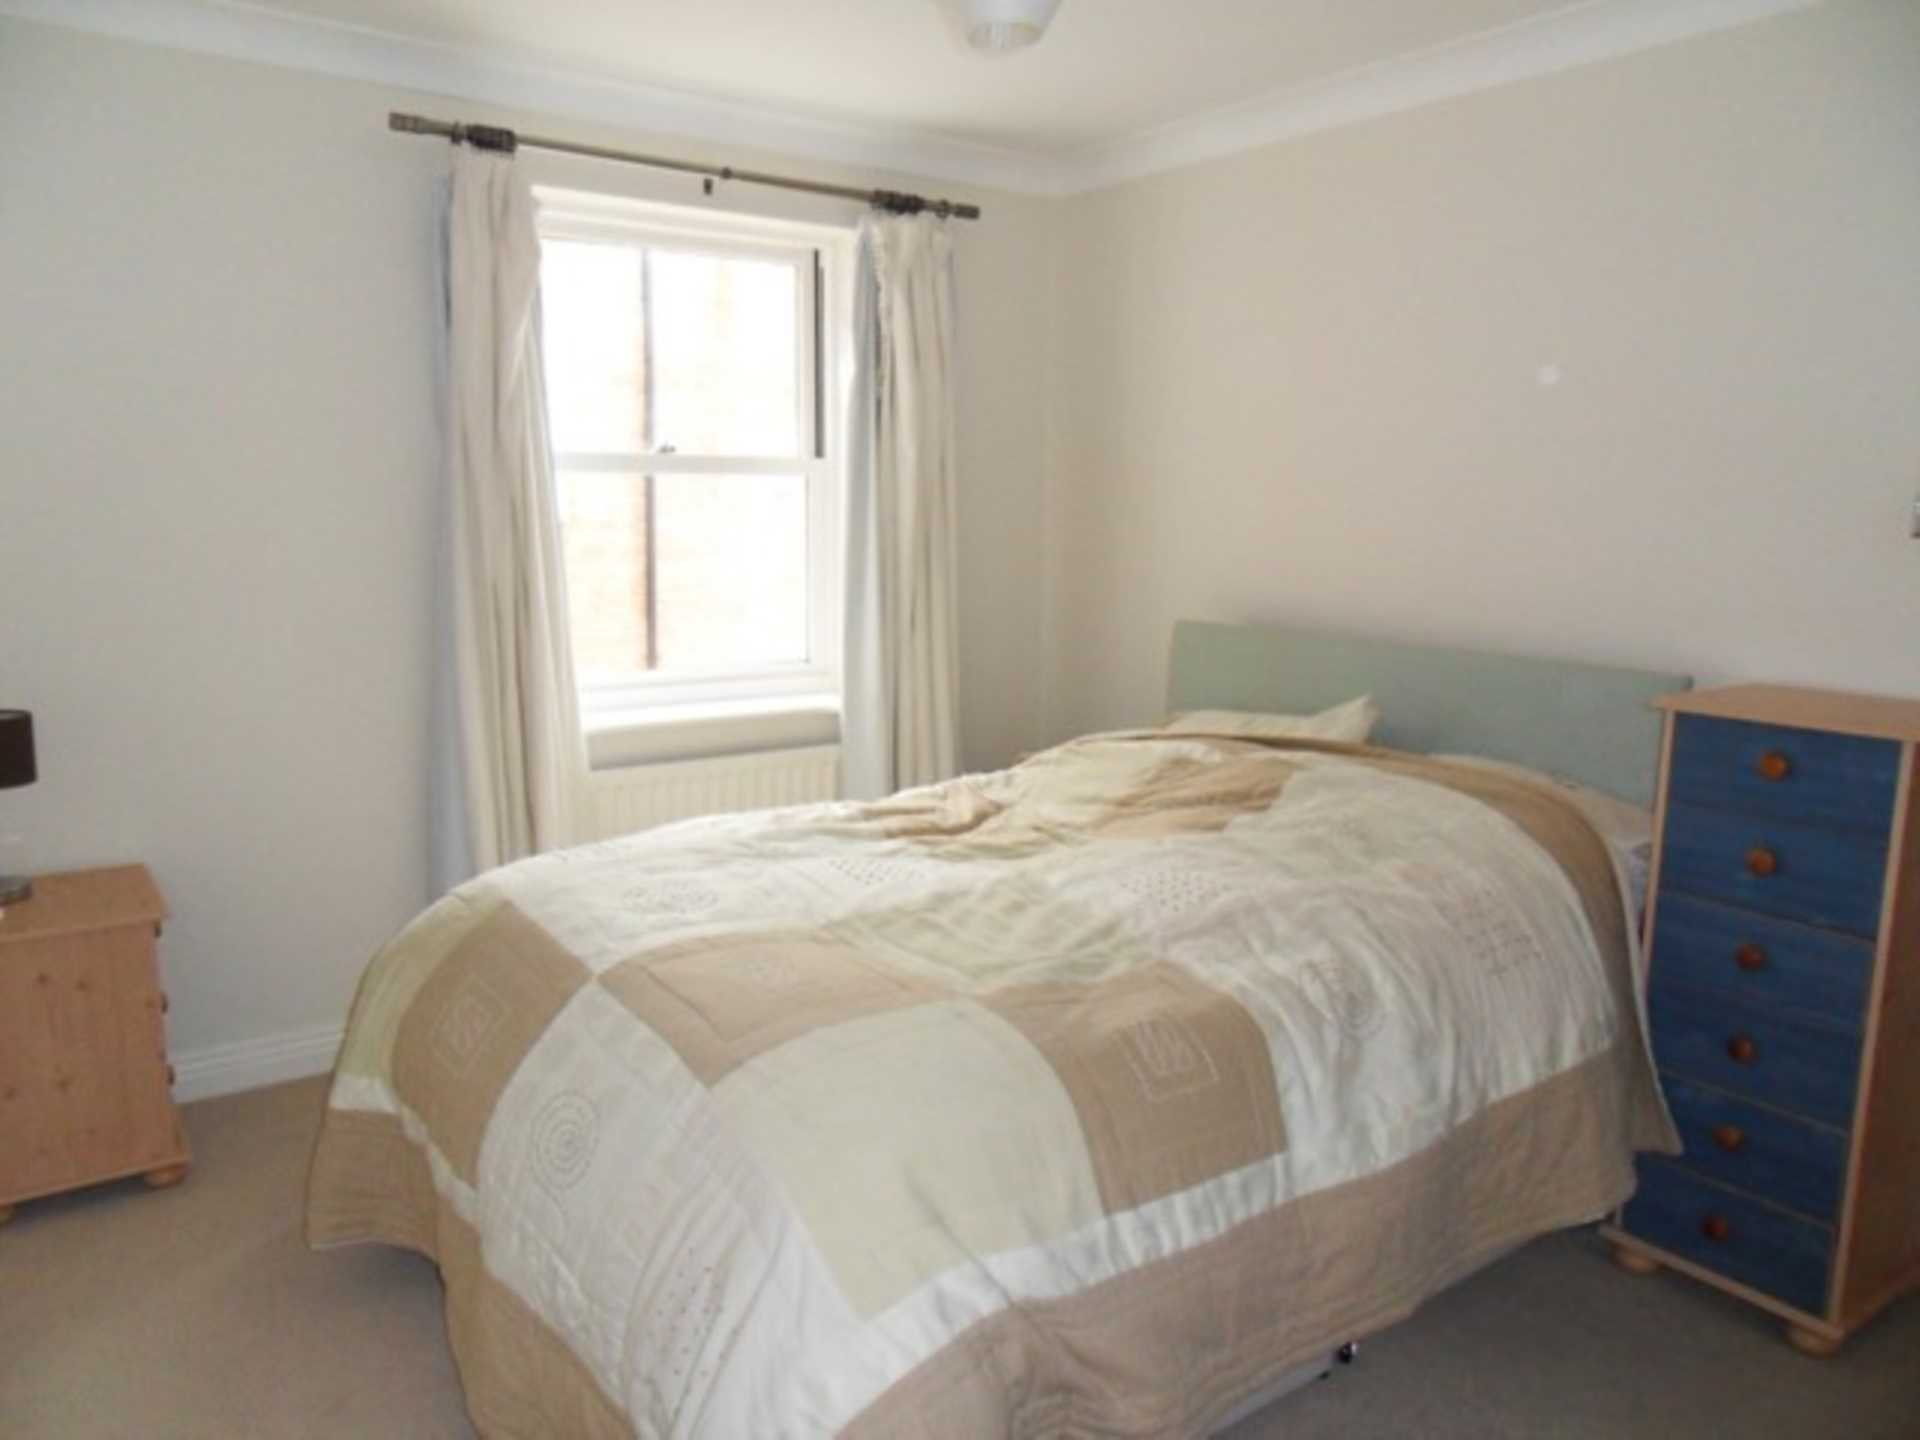 2 bed flat to rent in The Orkneys, Blandford Forum, Blandford Forum  - Property Image 5